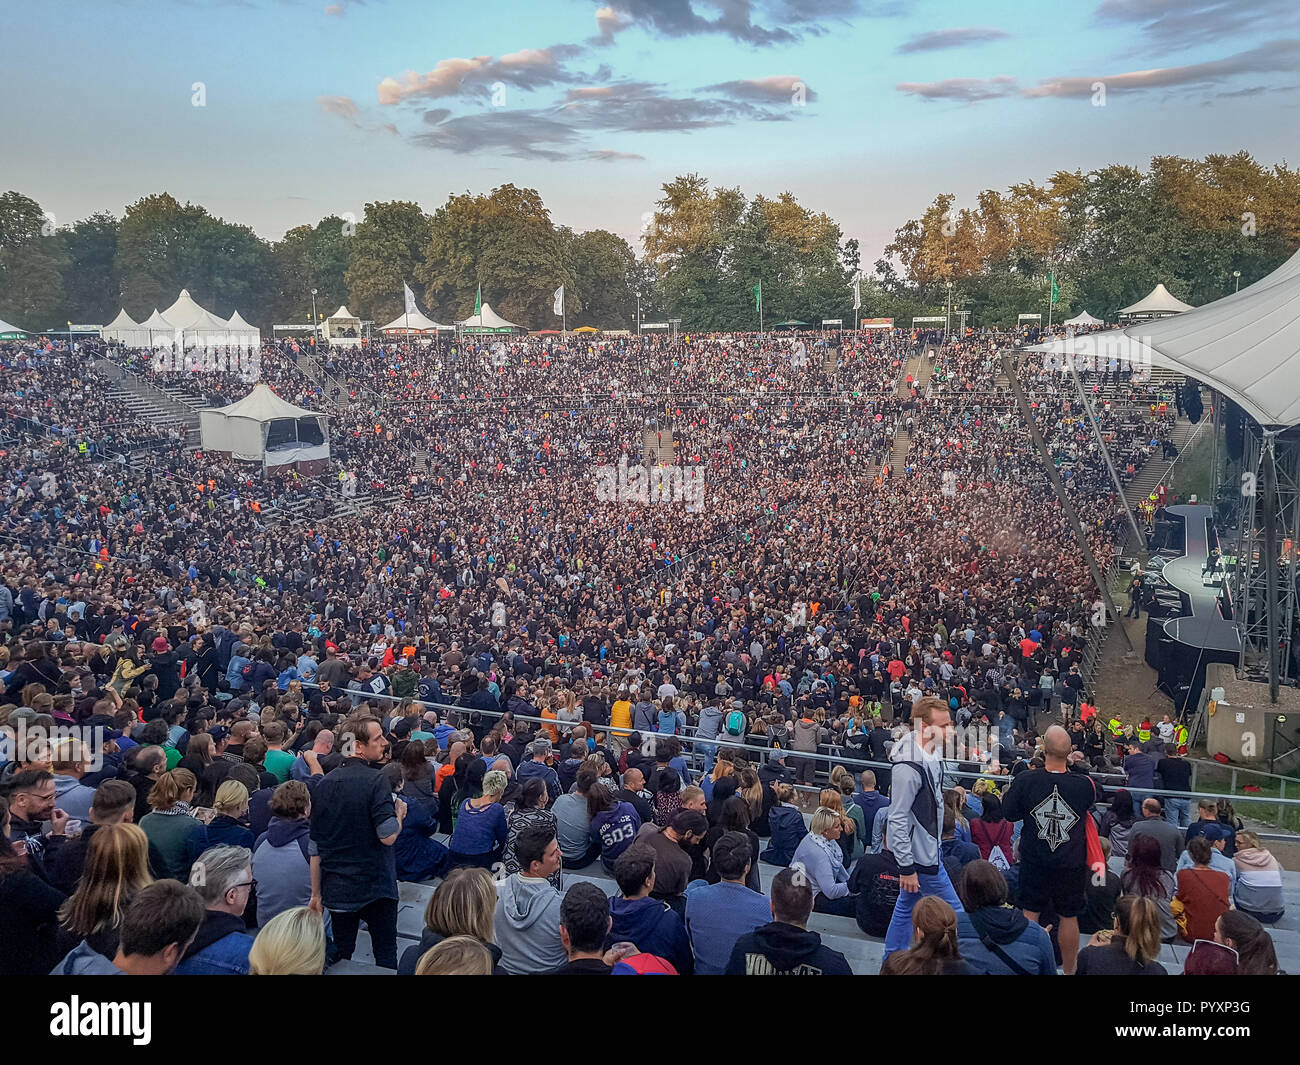 Concert, beat steaks, Kindl stage, Wuhlheide, Berlin, Germany, Konzert, Beatsteaks, Kindl-Buehne, Deutschland - Stock Image